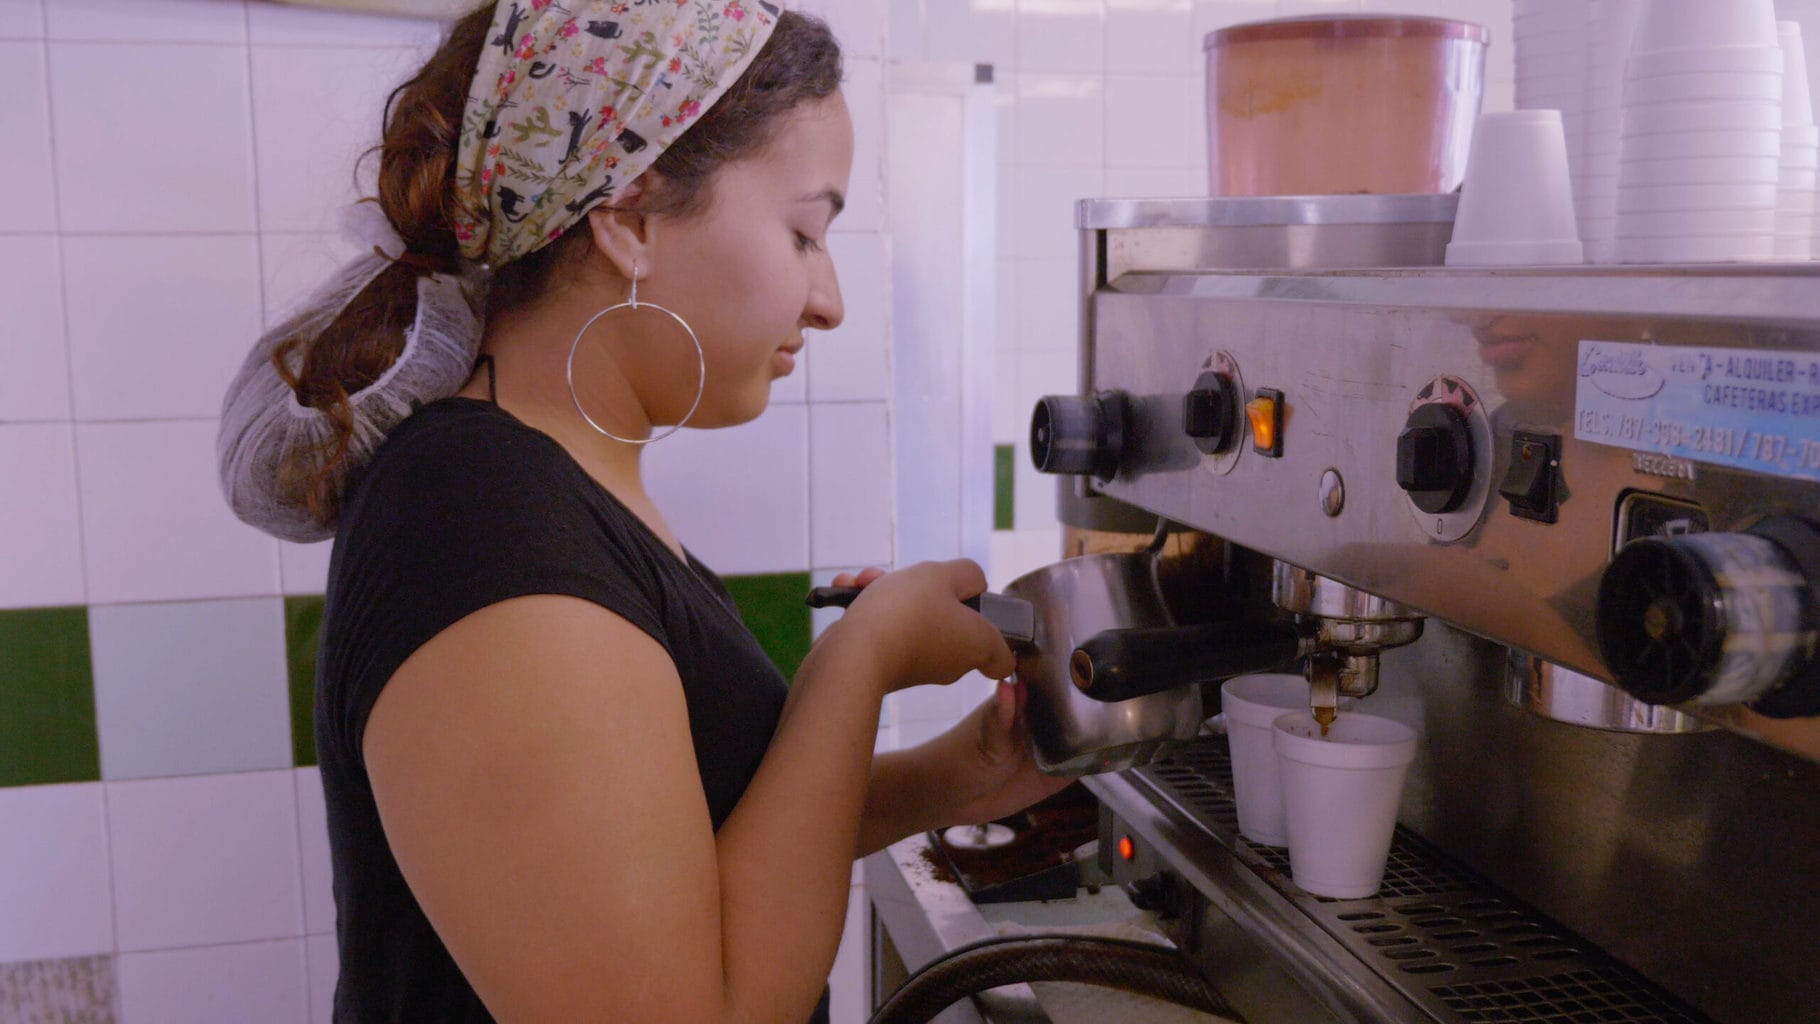 Alondra Toledo, co-founder of UnderstHand. Photo: Future of Work Film Inc.